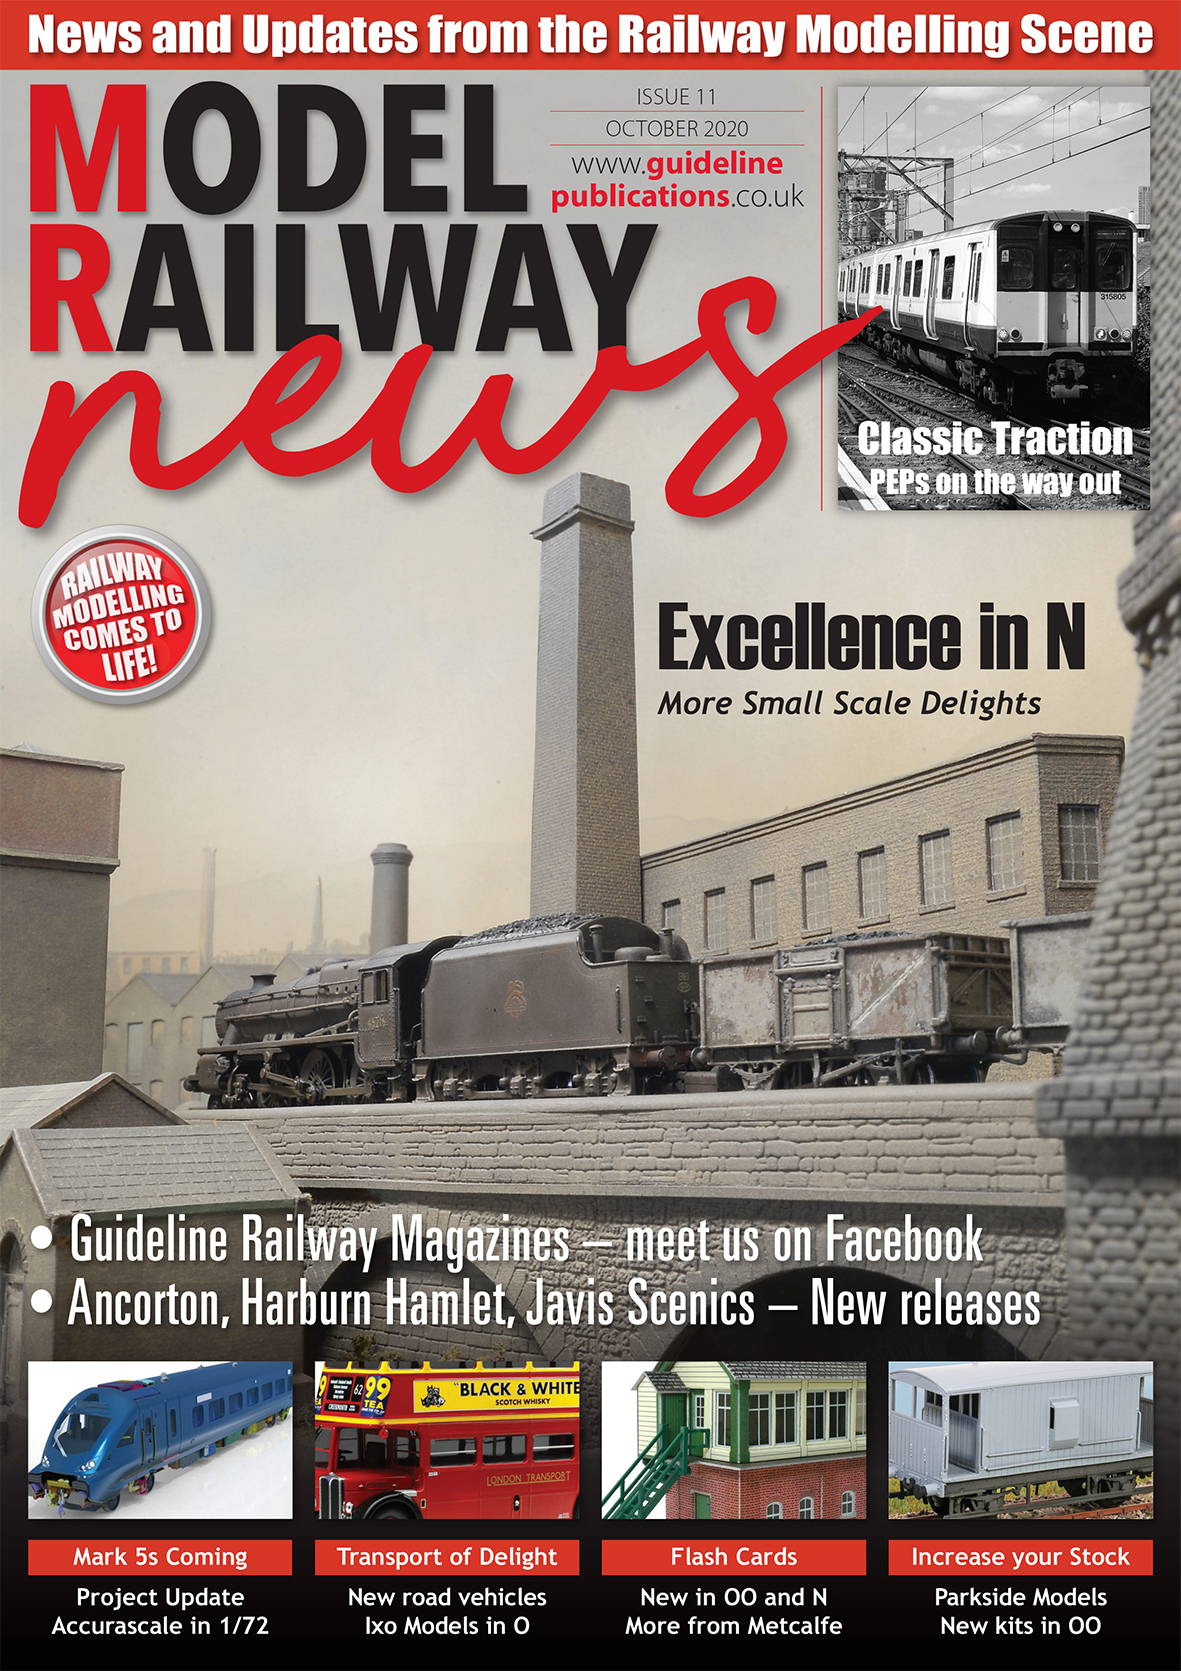 Guideline Publications Model Railway News issue 11 FREE DIGITAL ISSUE - October